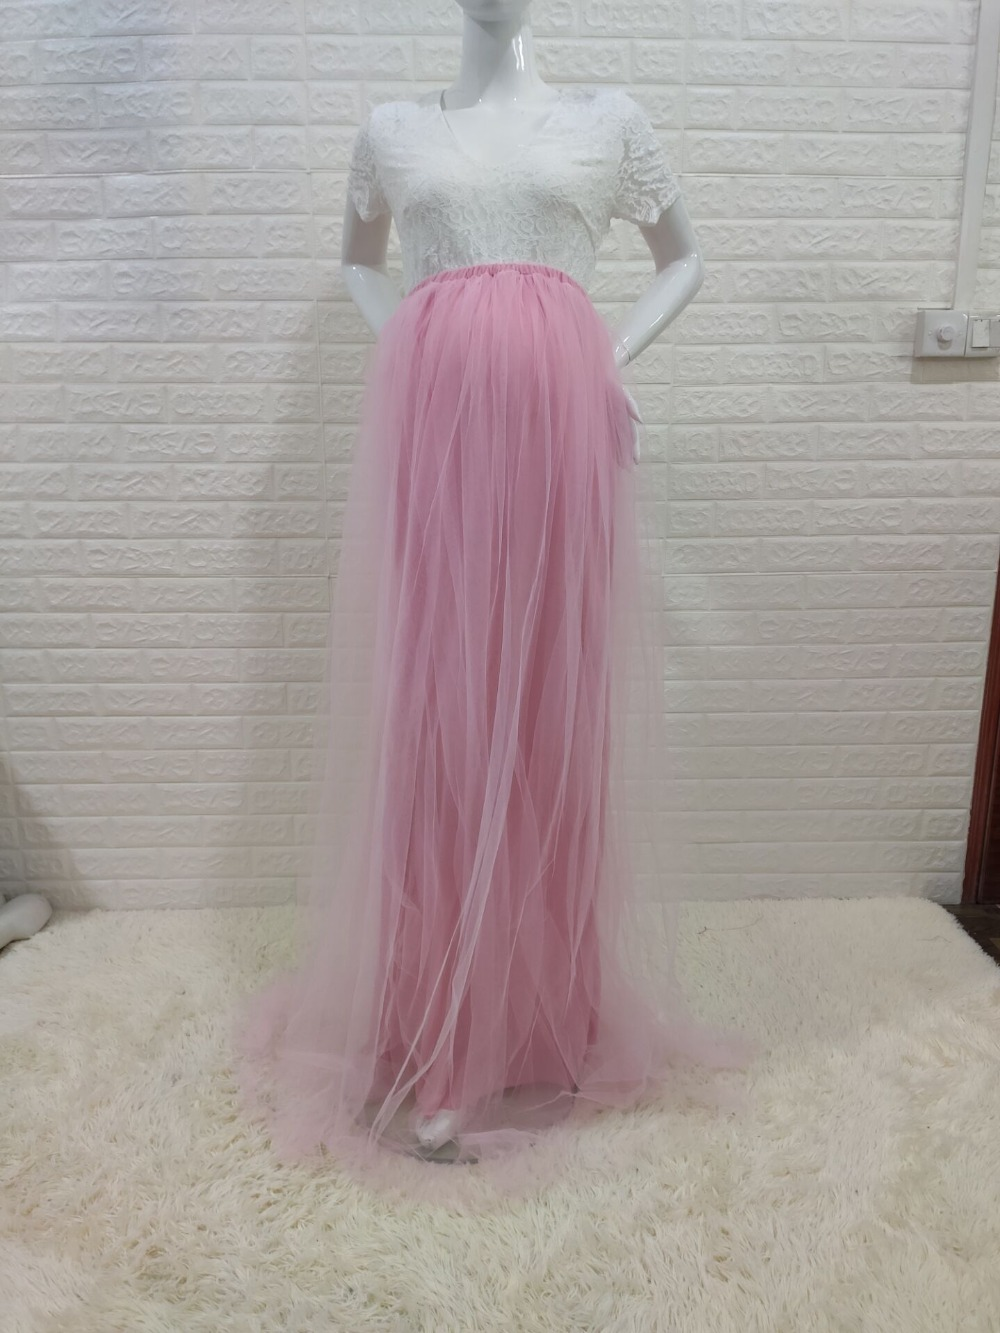 New Lace Maternity Photography Props Long Dress Cute Pregnancy Dresses Mesh Pregnant Women Maxi Gown For Baby Shower Photo Shoot (6)